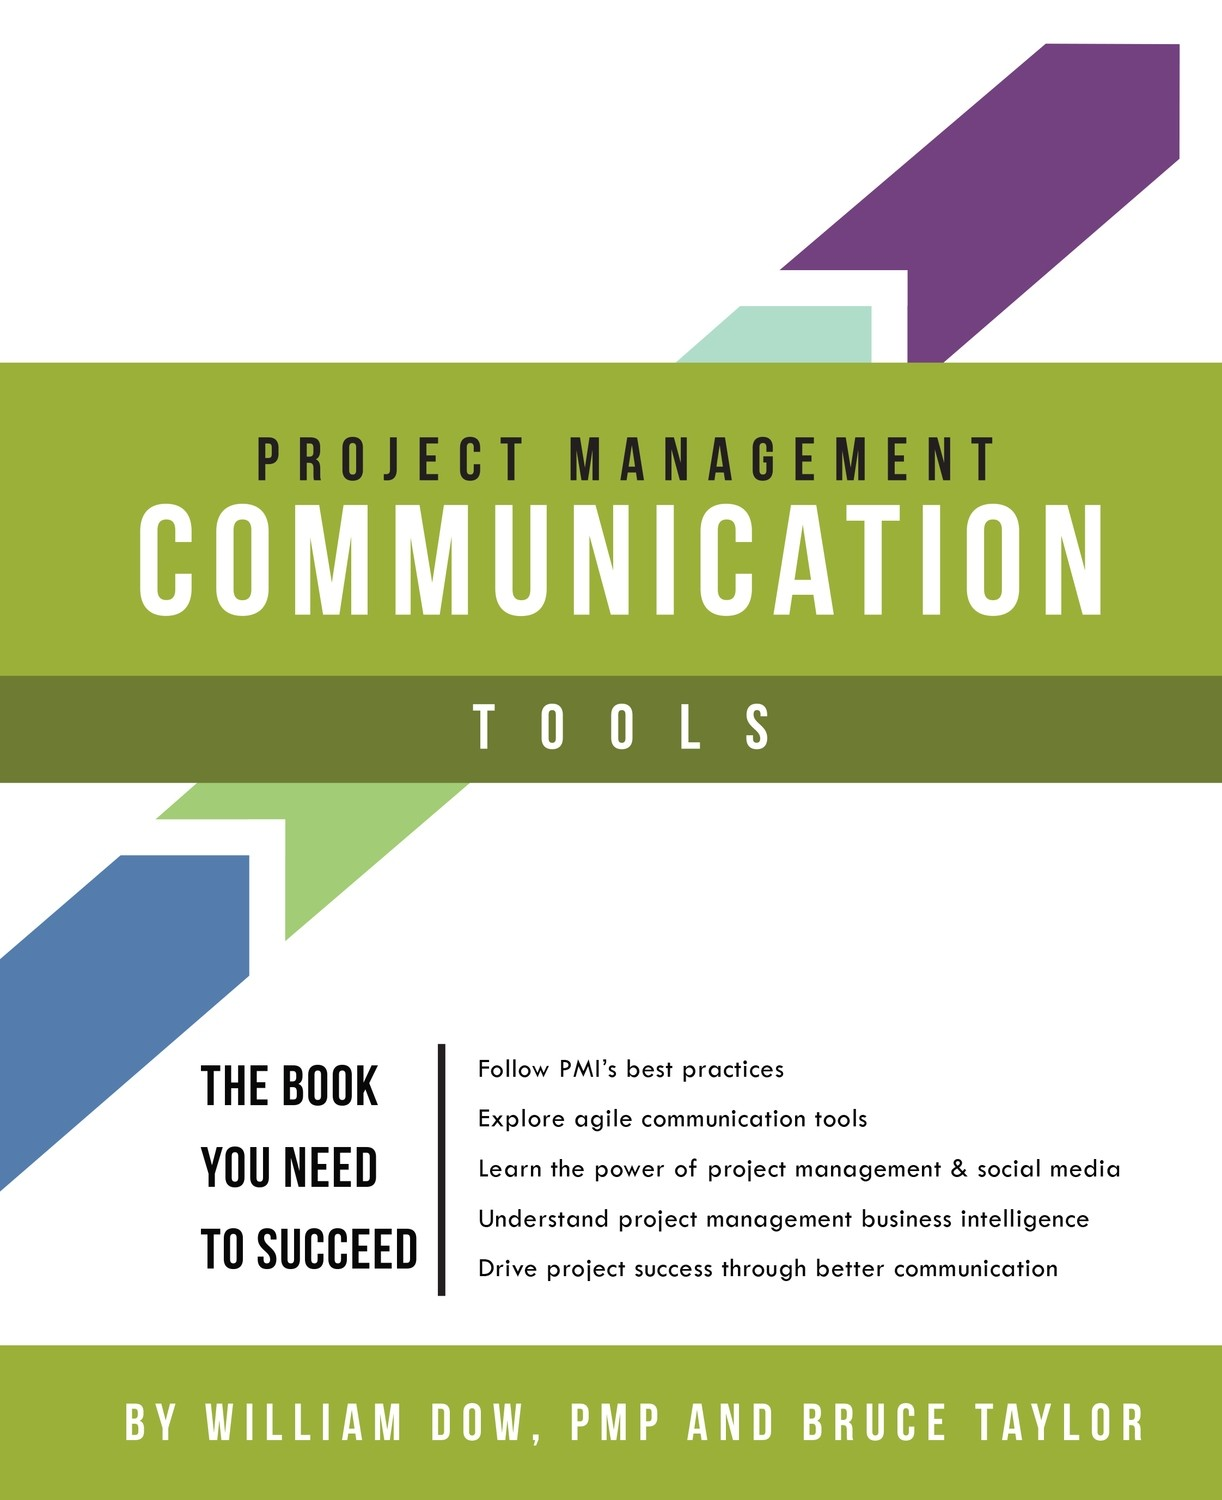 Project Communiction Tools - Planning Questions